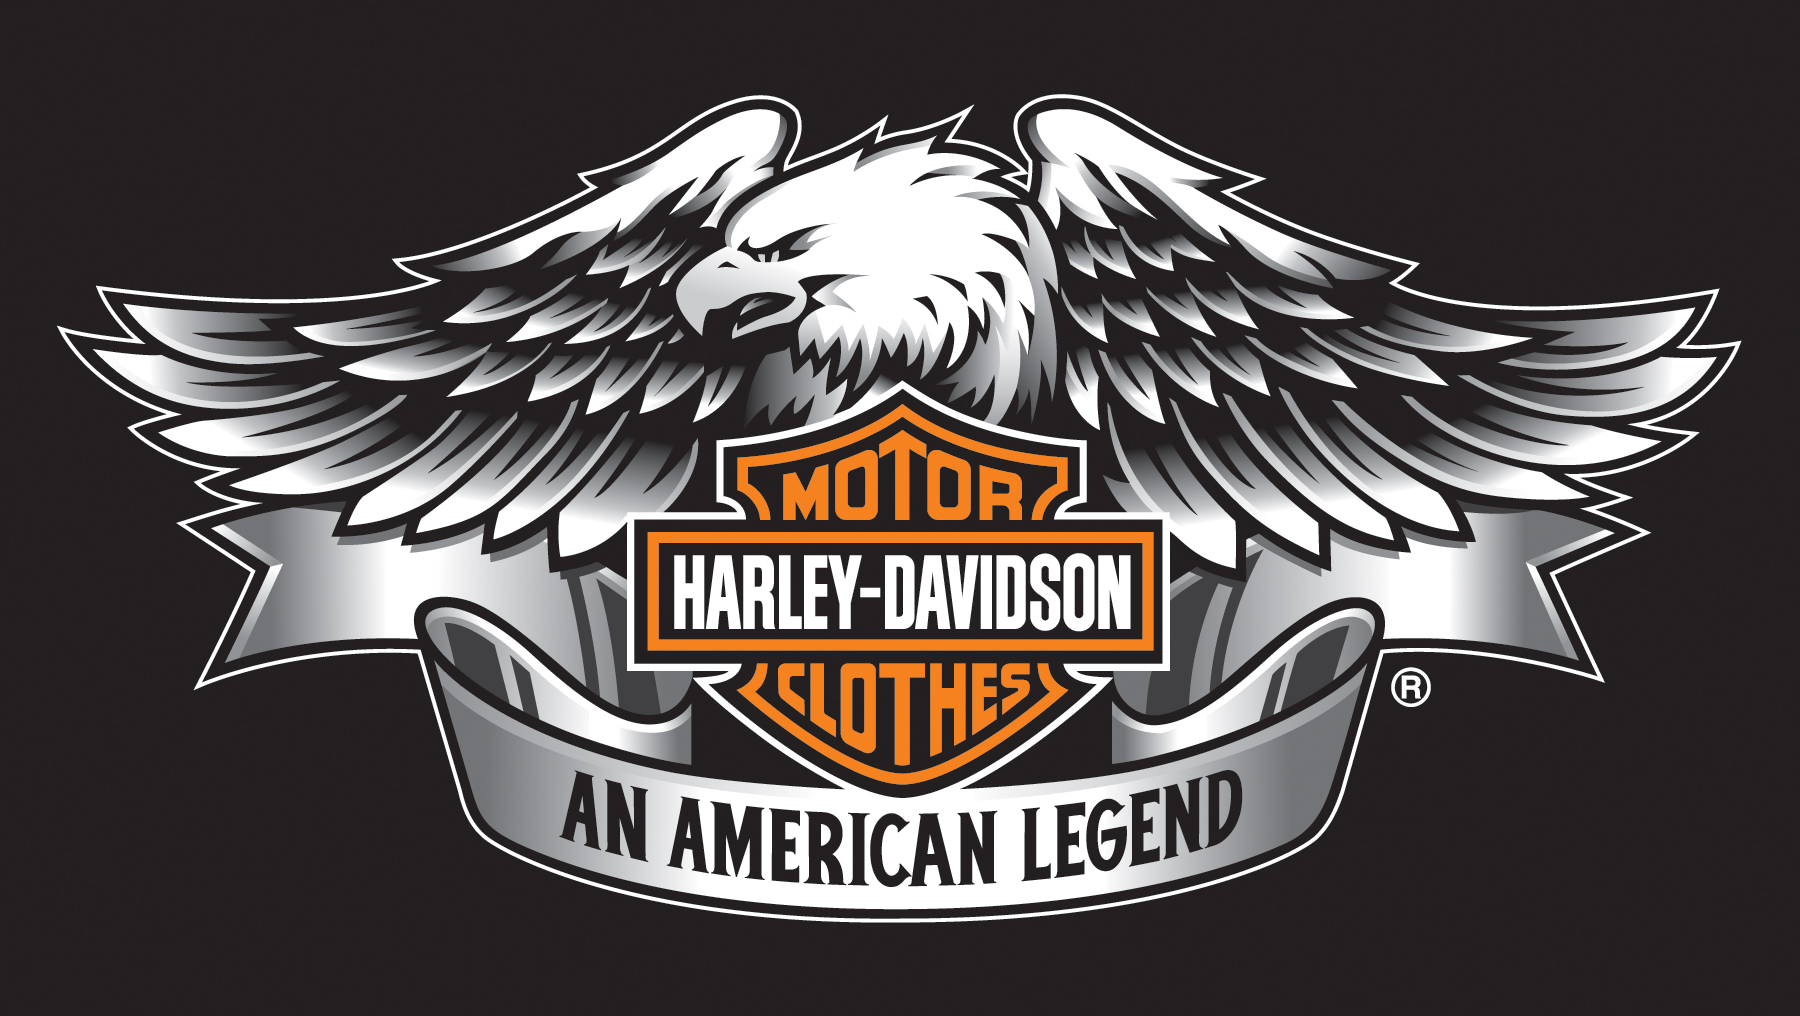 Harley Davidson Logo HD Wallpaperjpg 1800x1016